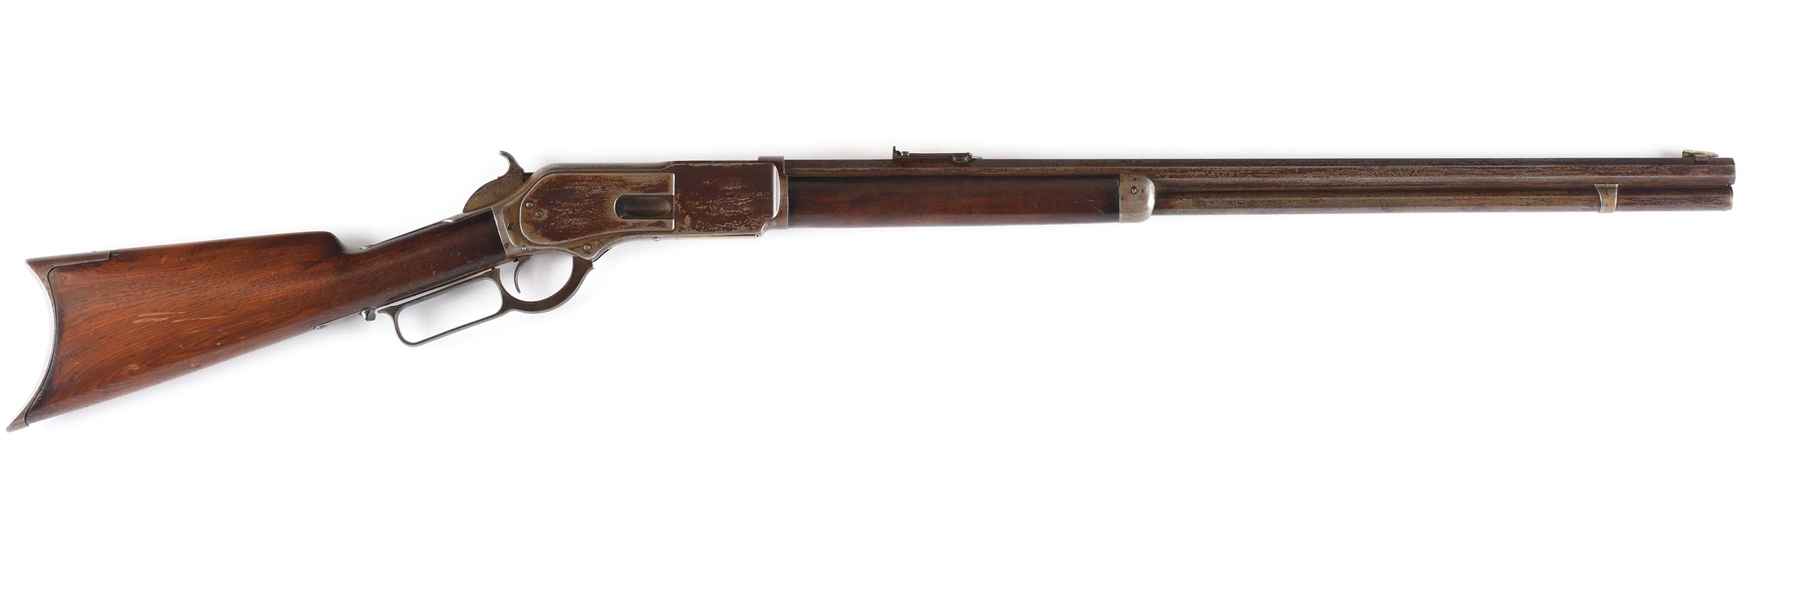 (A) EARLY WINCHESTER MODEL 1876 OPEN TOP LEVER ACTION RIFLE (1876).